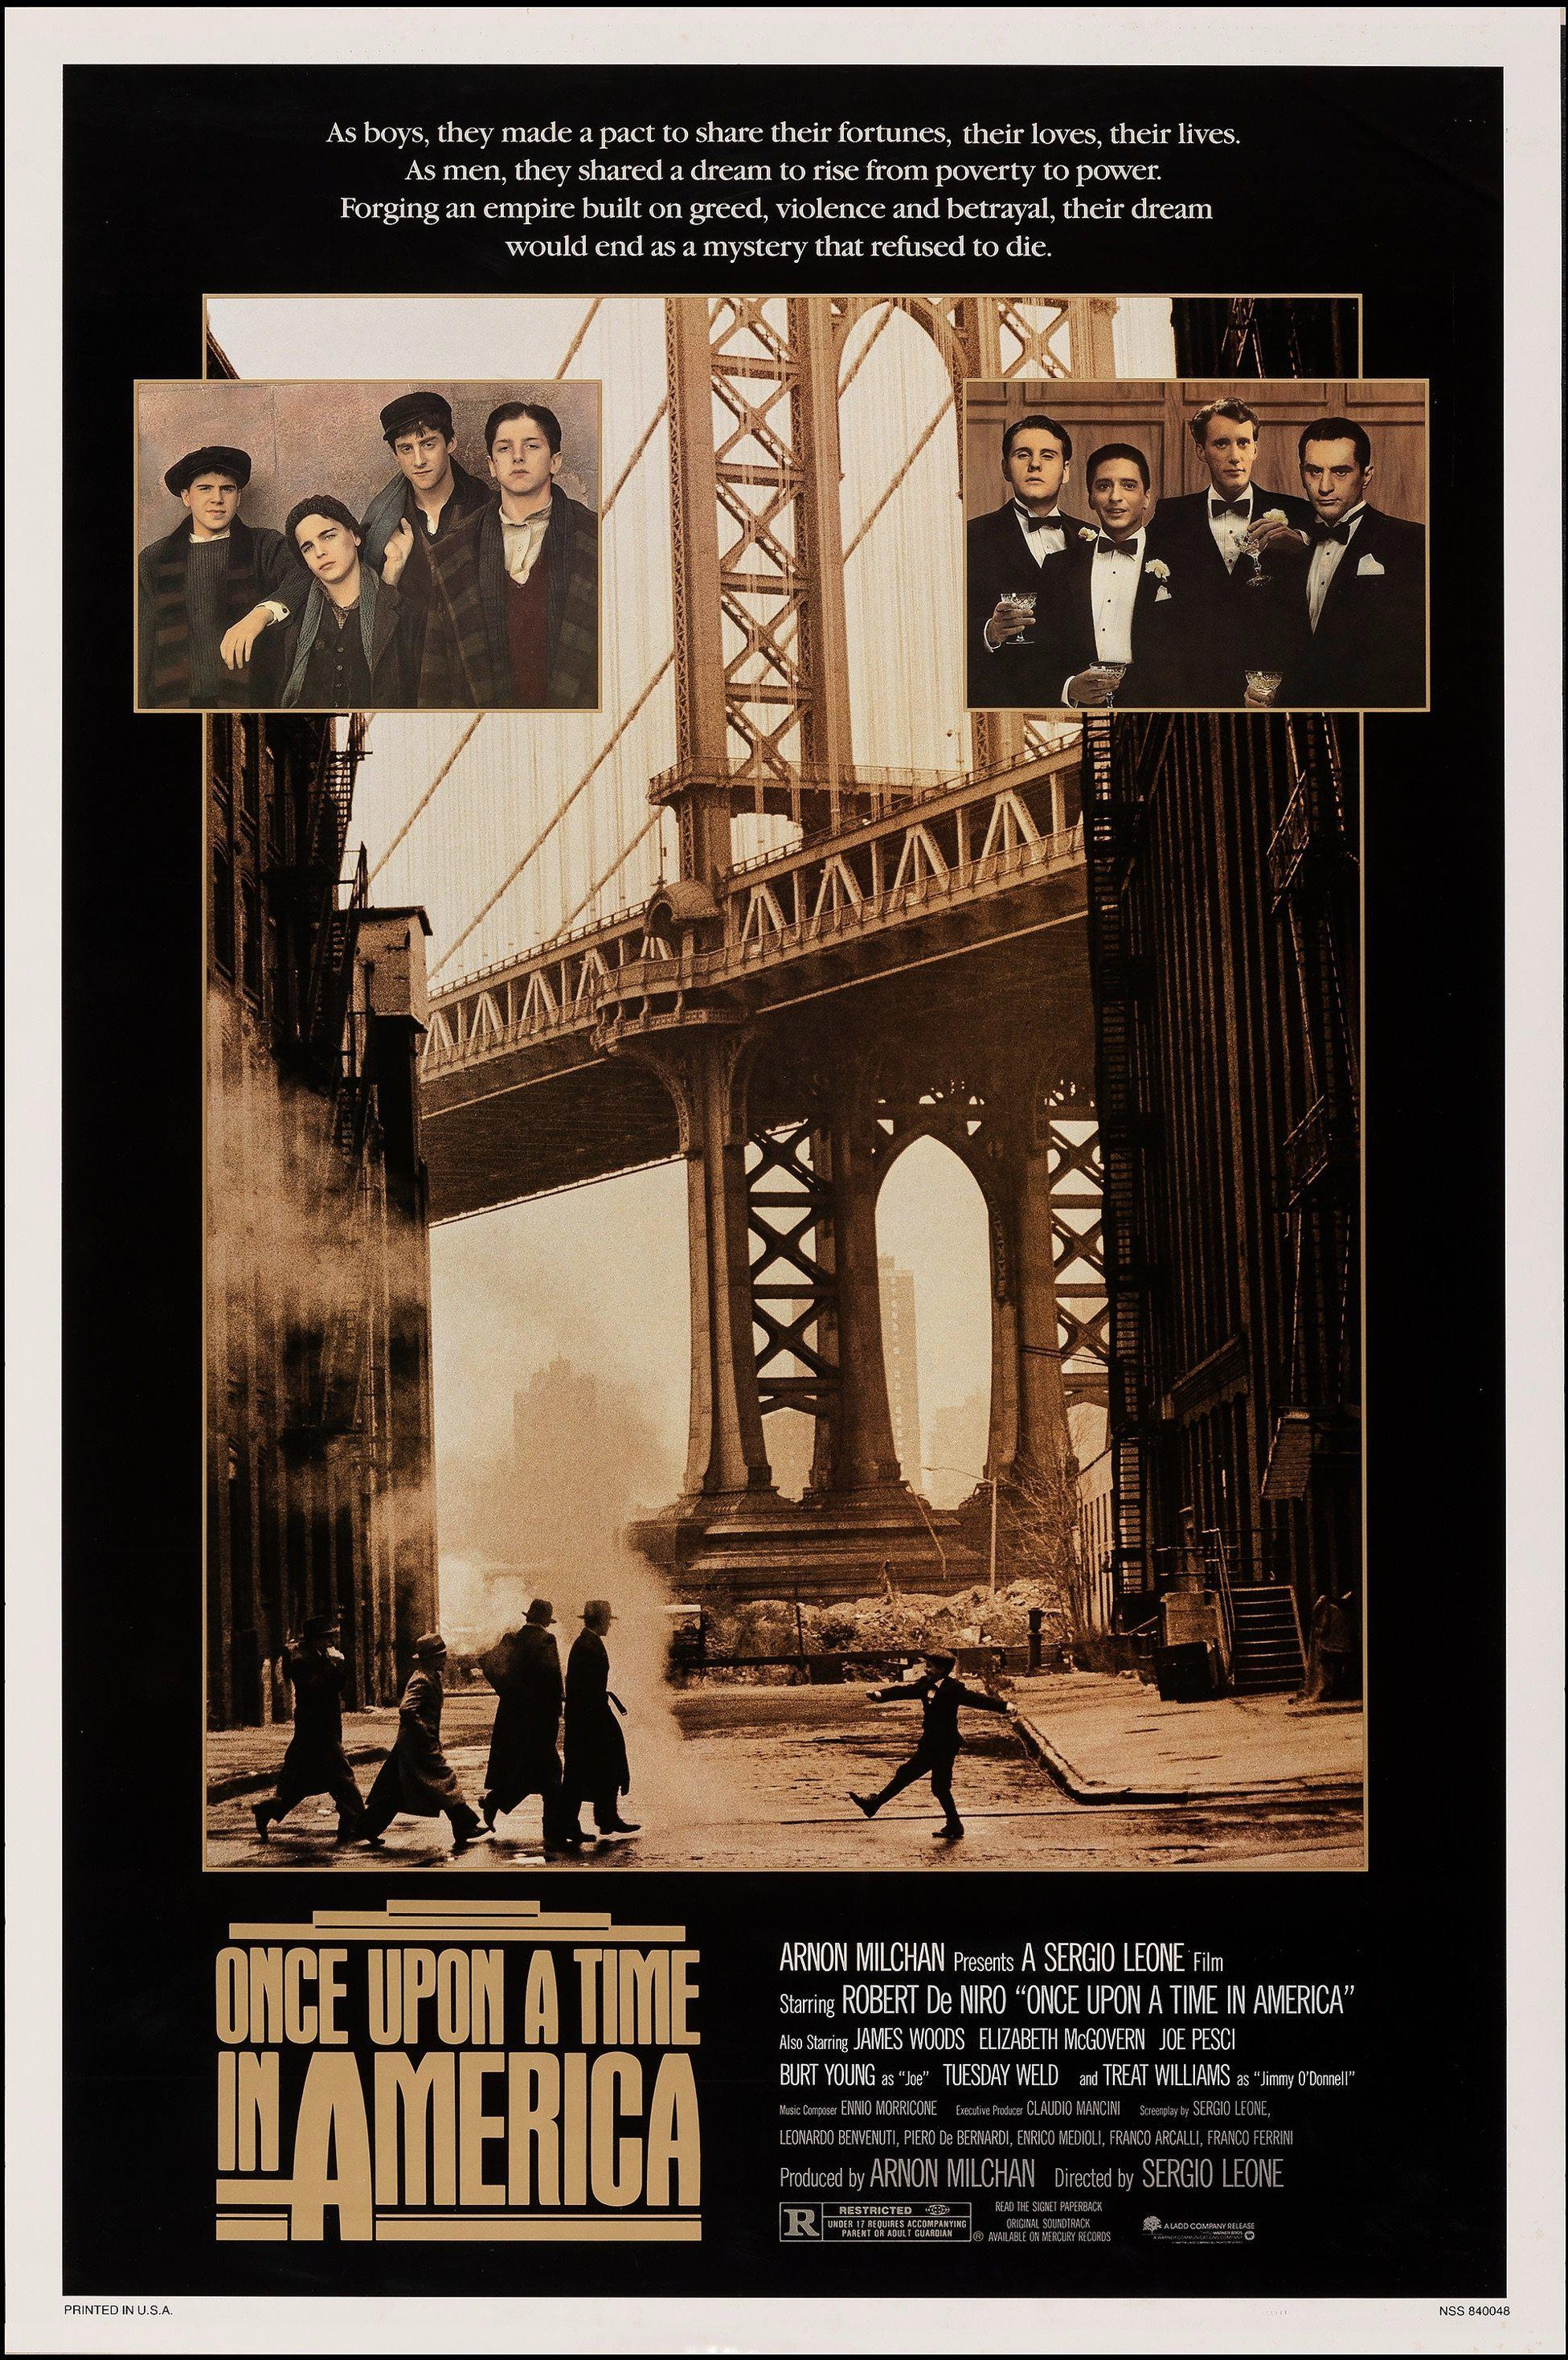 Once Upon a Time in America 1 Sheet (27x41) Original Vintage Movie Poster